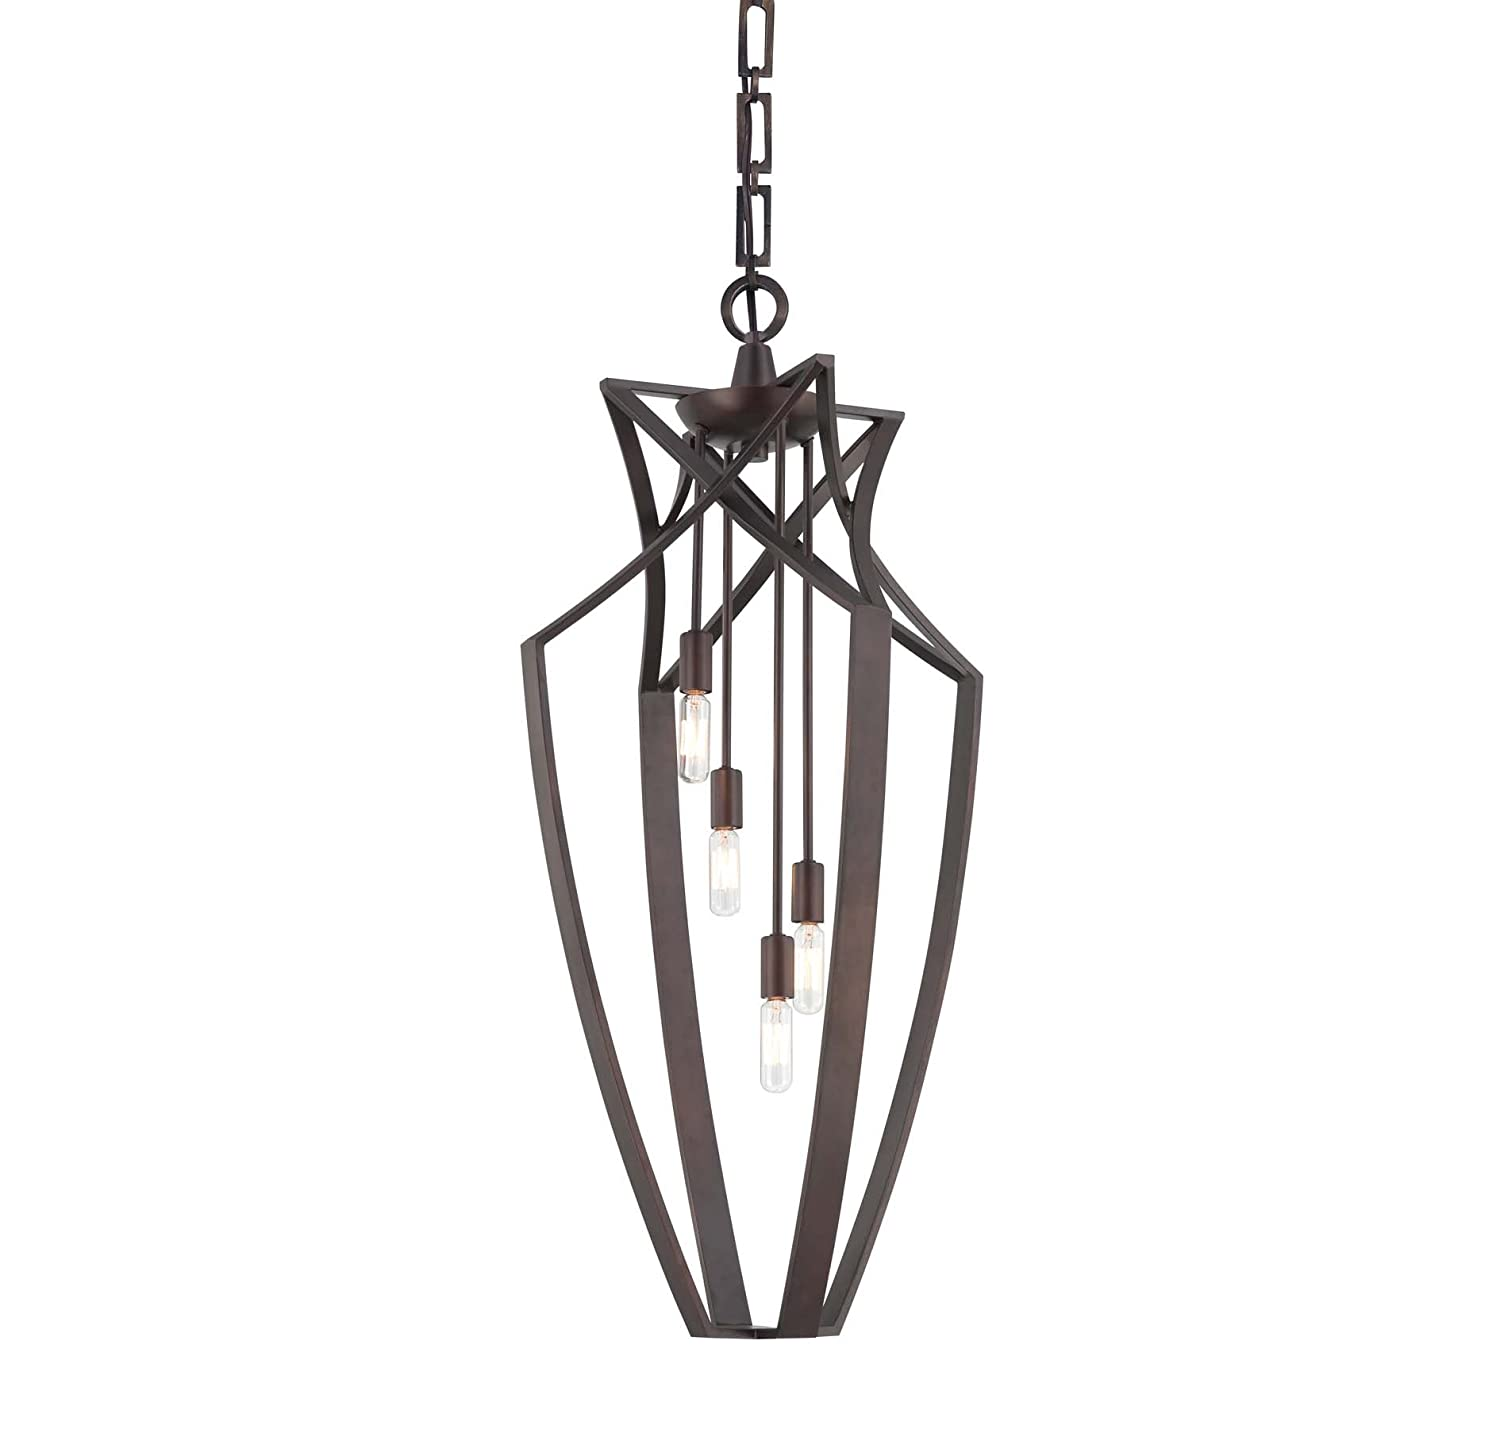 Savoy house 3 6821 4 13 windsung 4 light pendant english bronze savoy house 3 6821 4 13 windsung 4 light pendant english bronze ceiling pendant fixtures amazon arubaitofo Choice Image